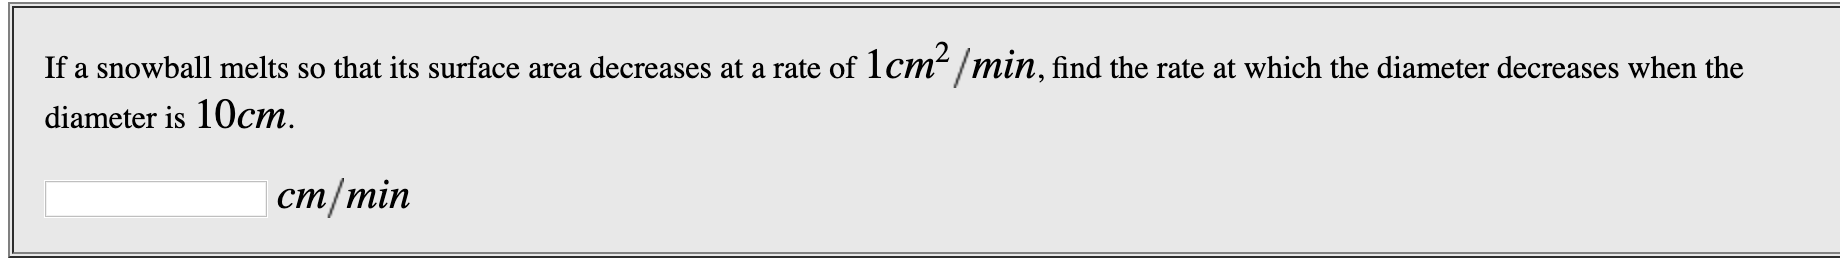 If a snowball melts so that its surface area decreases at a rate of 1cm /min, find the rate at which the diameter decreases when the diameter is 10cm cm/min